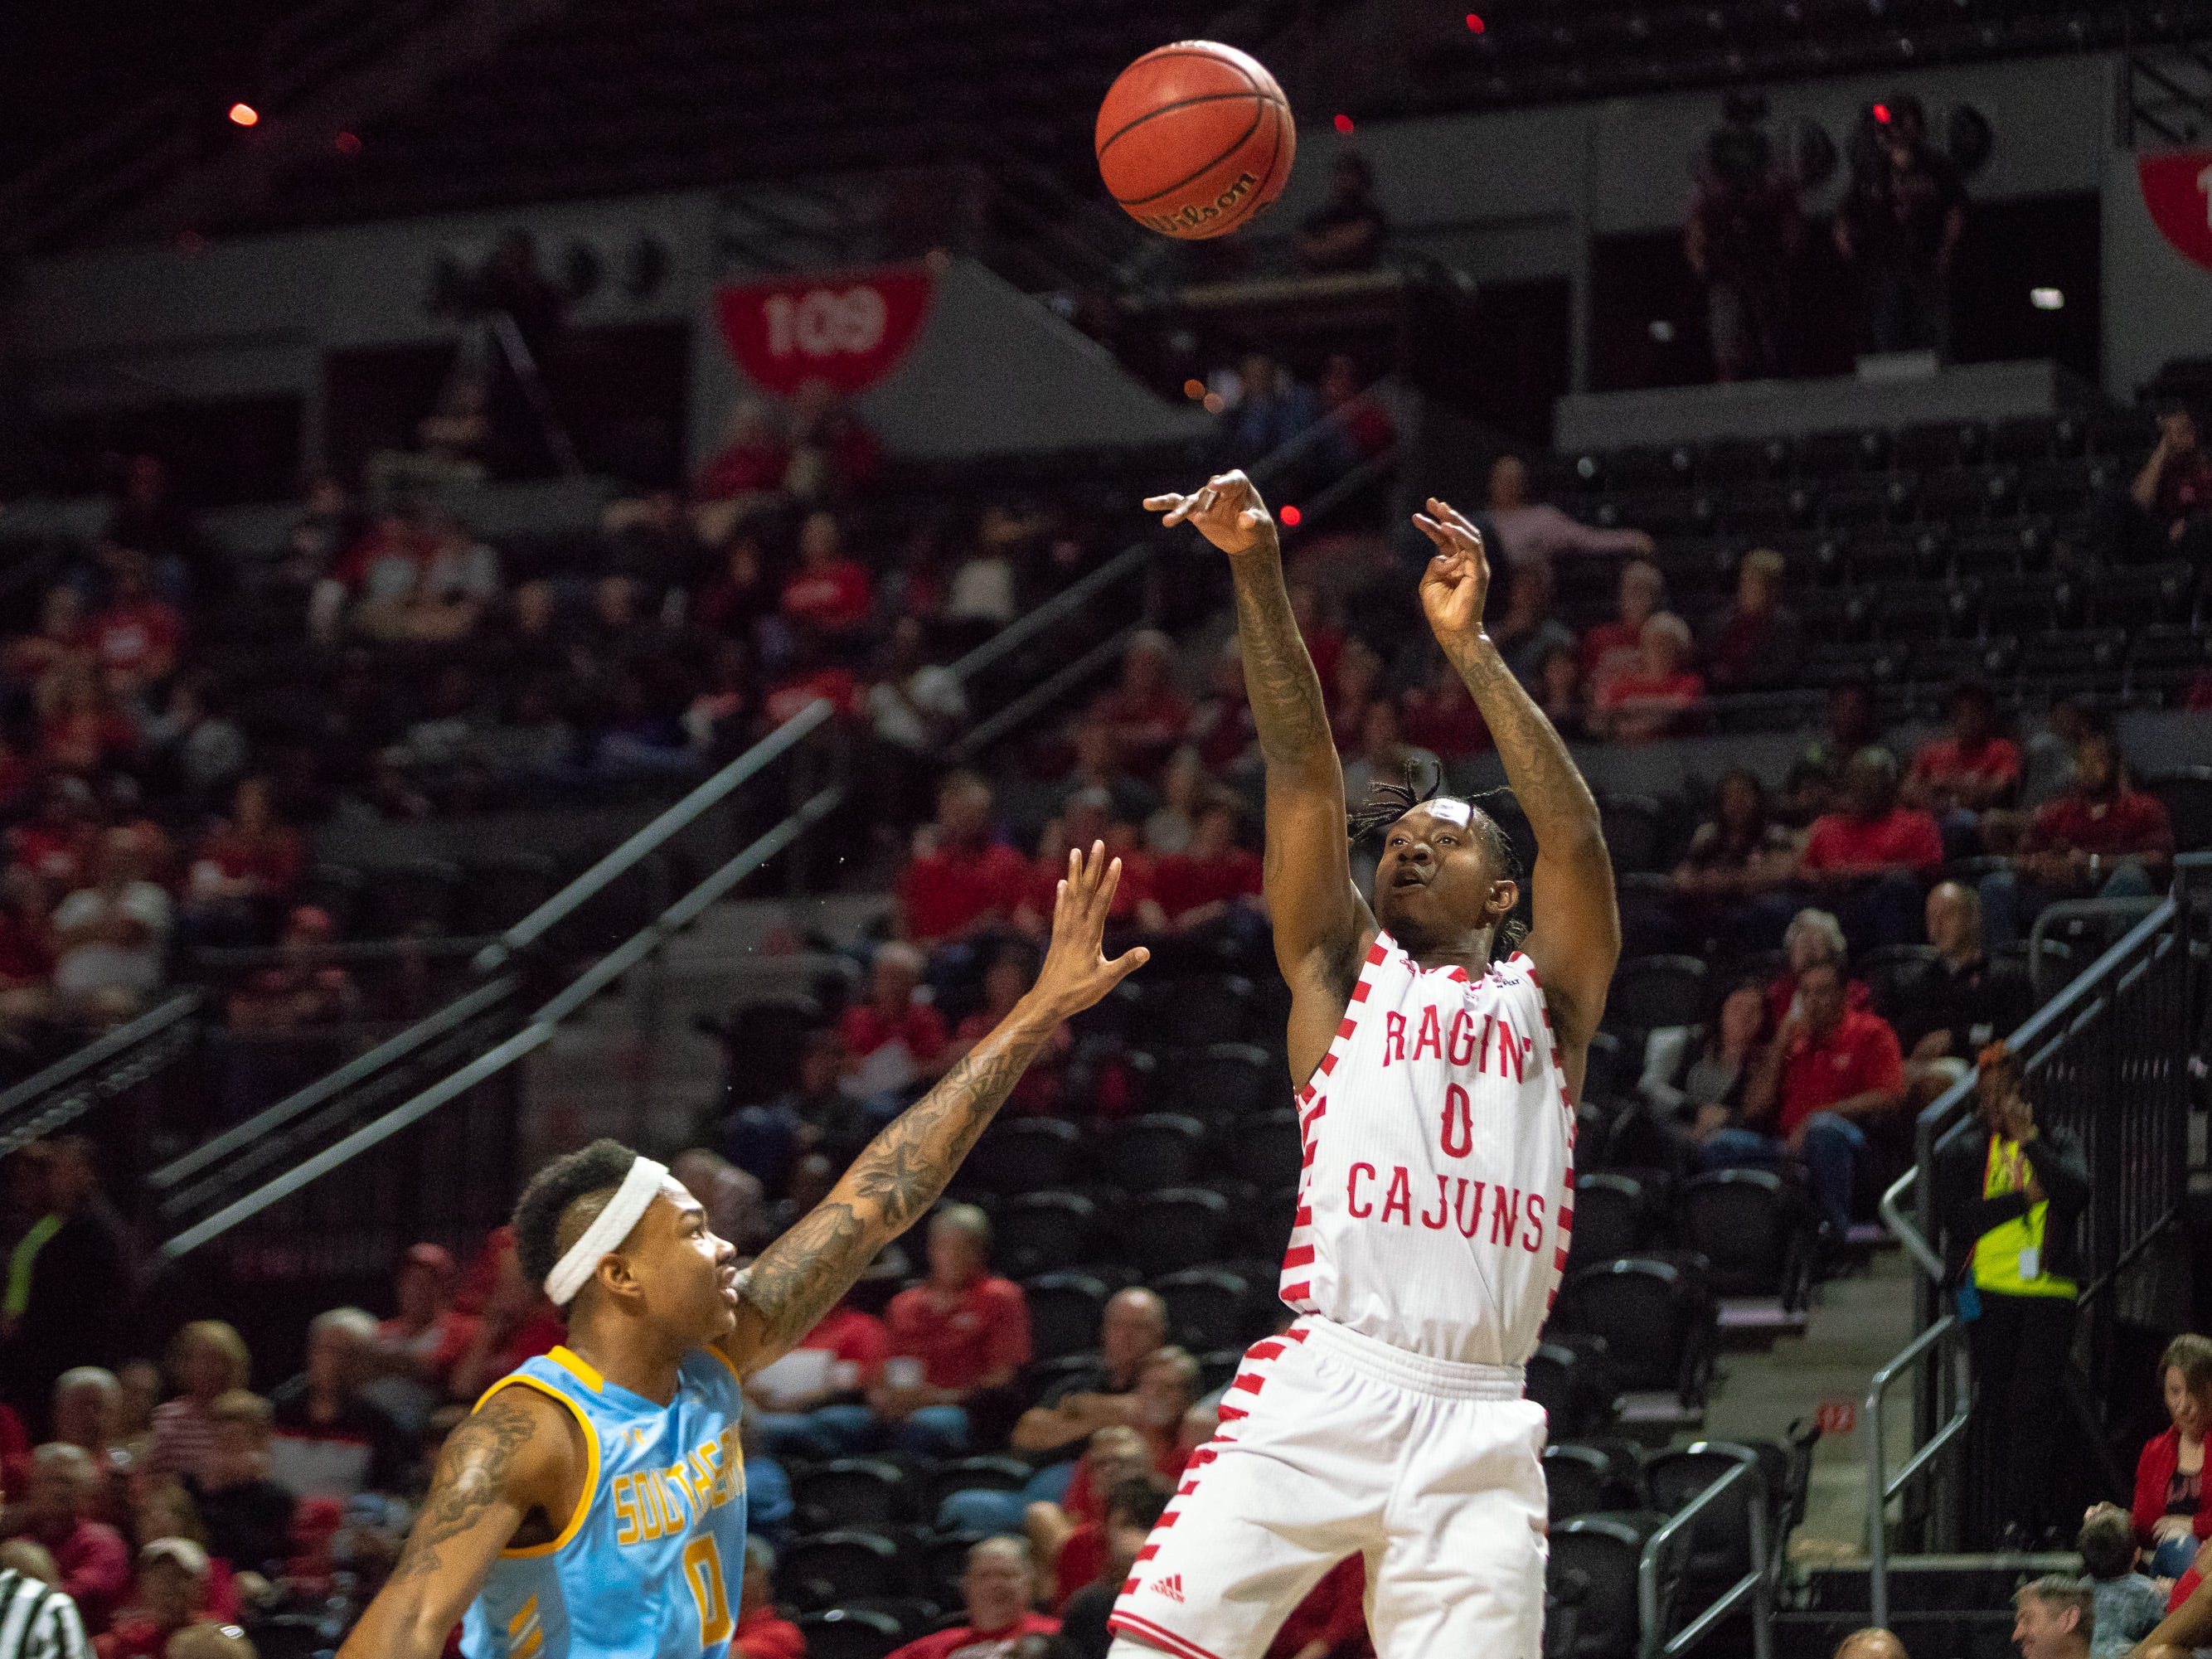 UL's Cedric Russell shoots from the three-point line as the Ragin' Cajuns play against the Southern University Jaguars at the Cajundome on December 1, 2018.